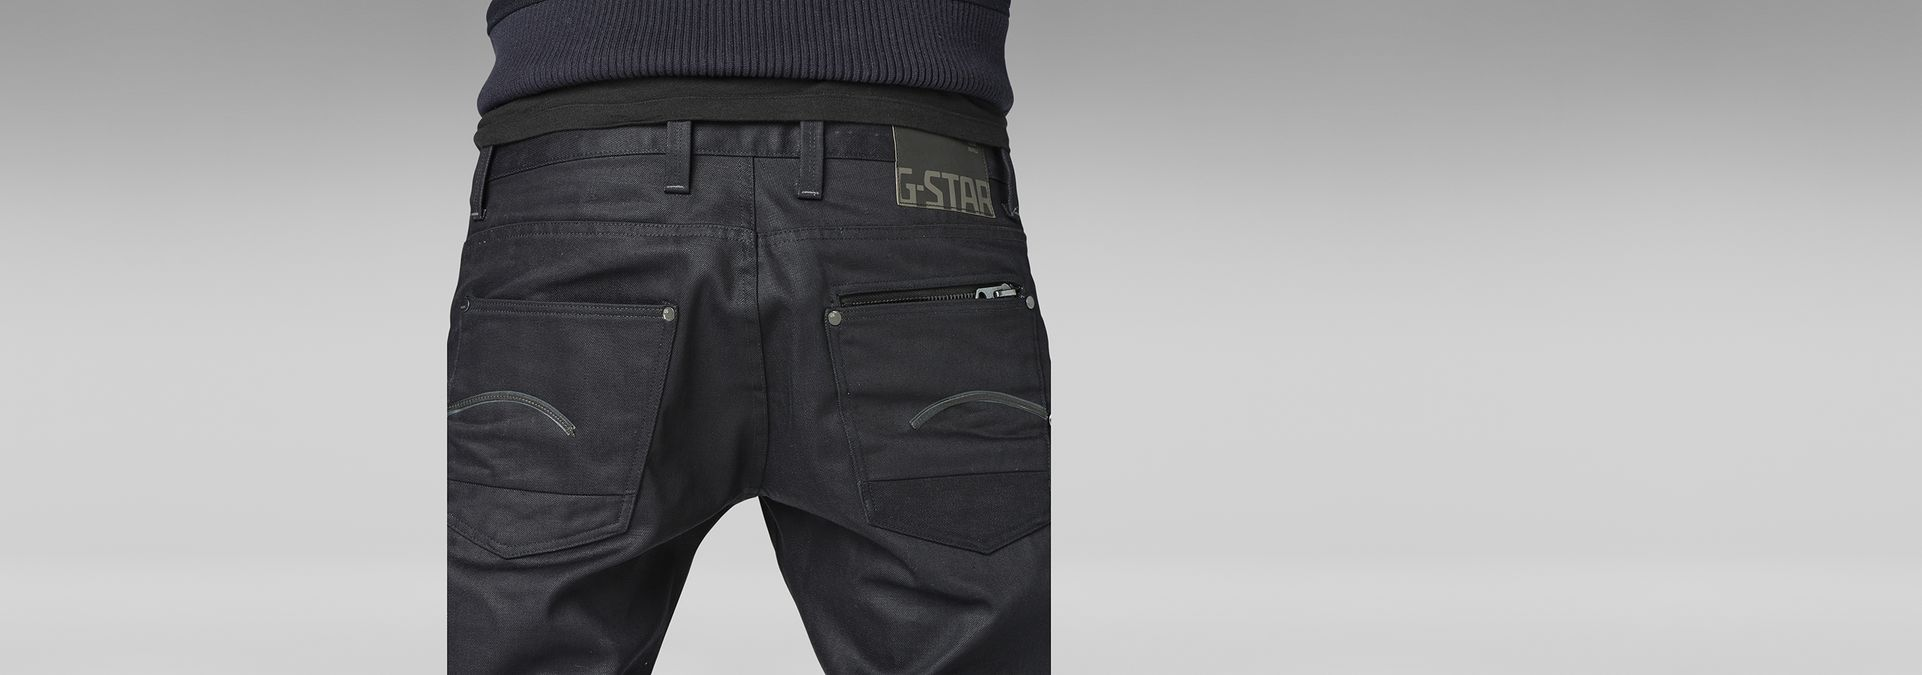 attacc low straight jeans 3d aged men g star raw. Black Bedroom Furniture Sets. Home Design Ideas